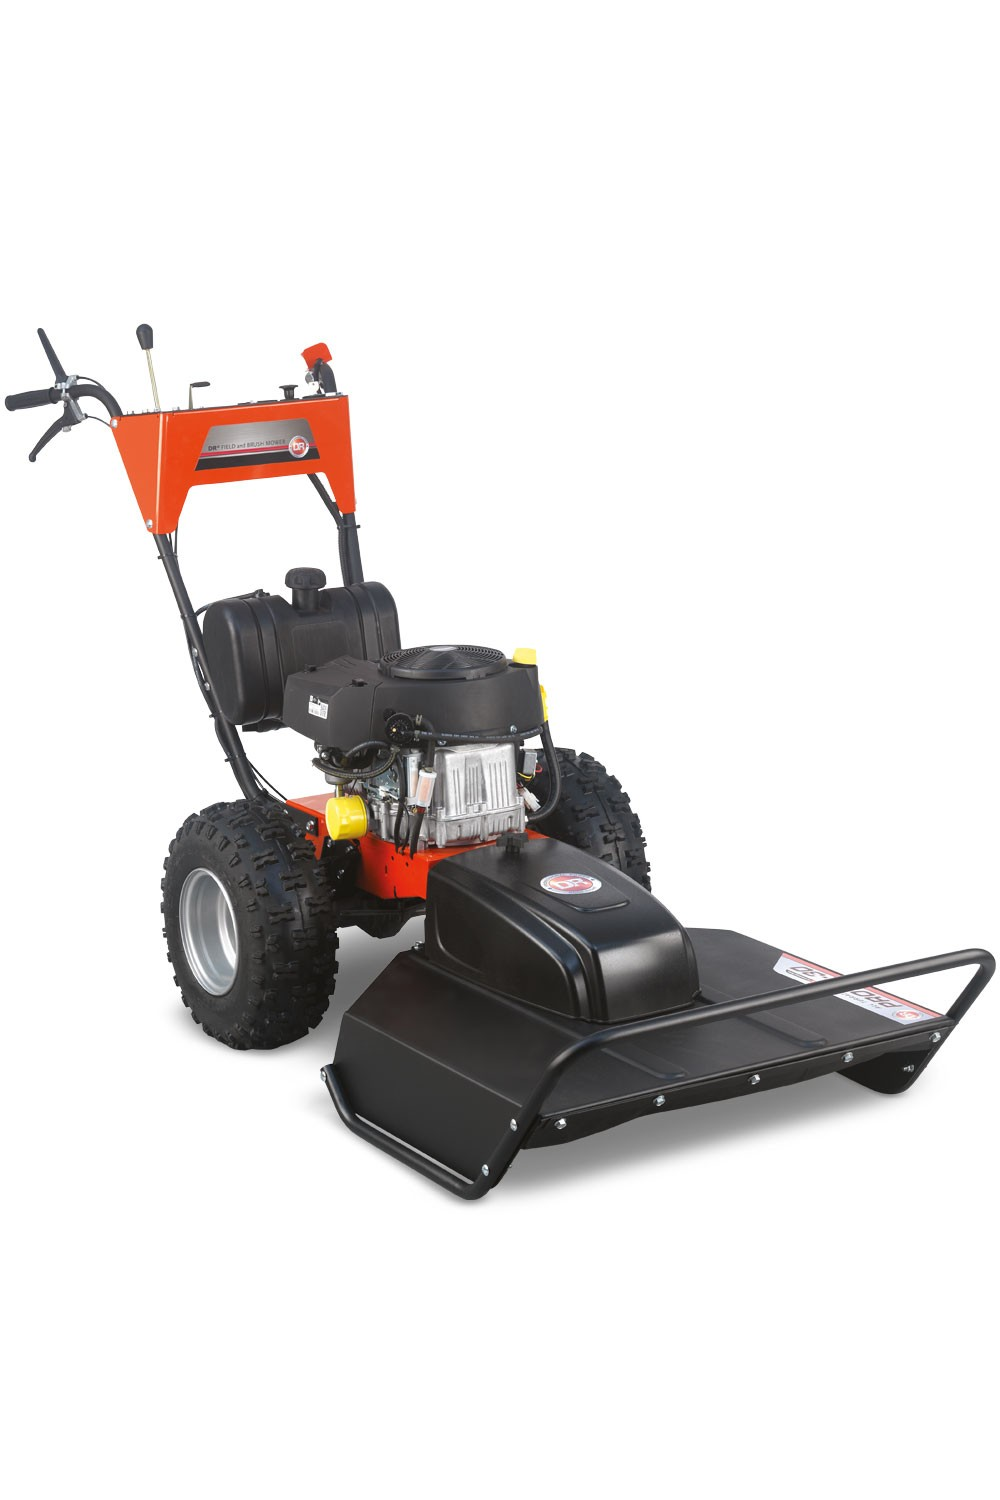 Dr Pro Xl 30 Walk Behind Field And Brush Mower